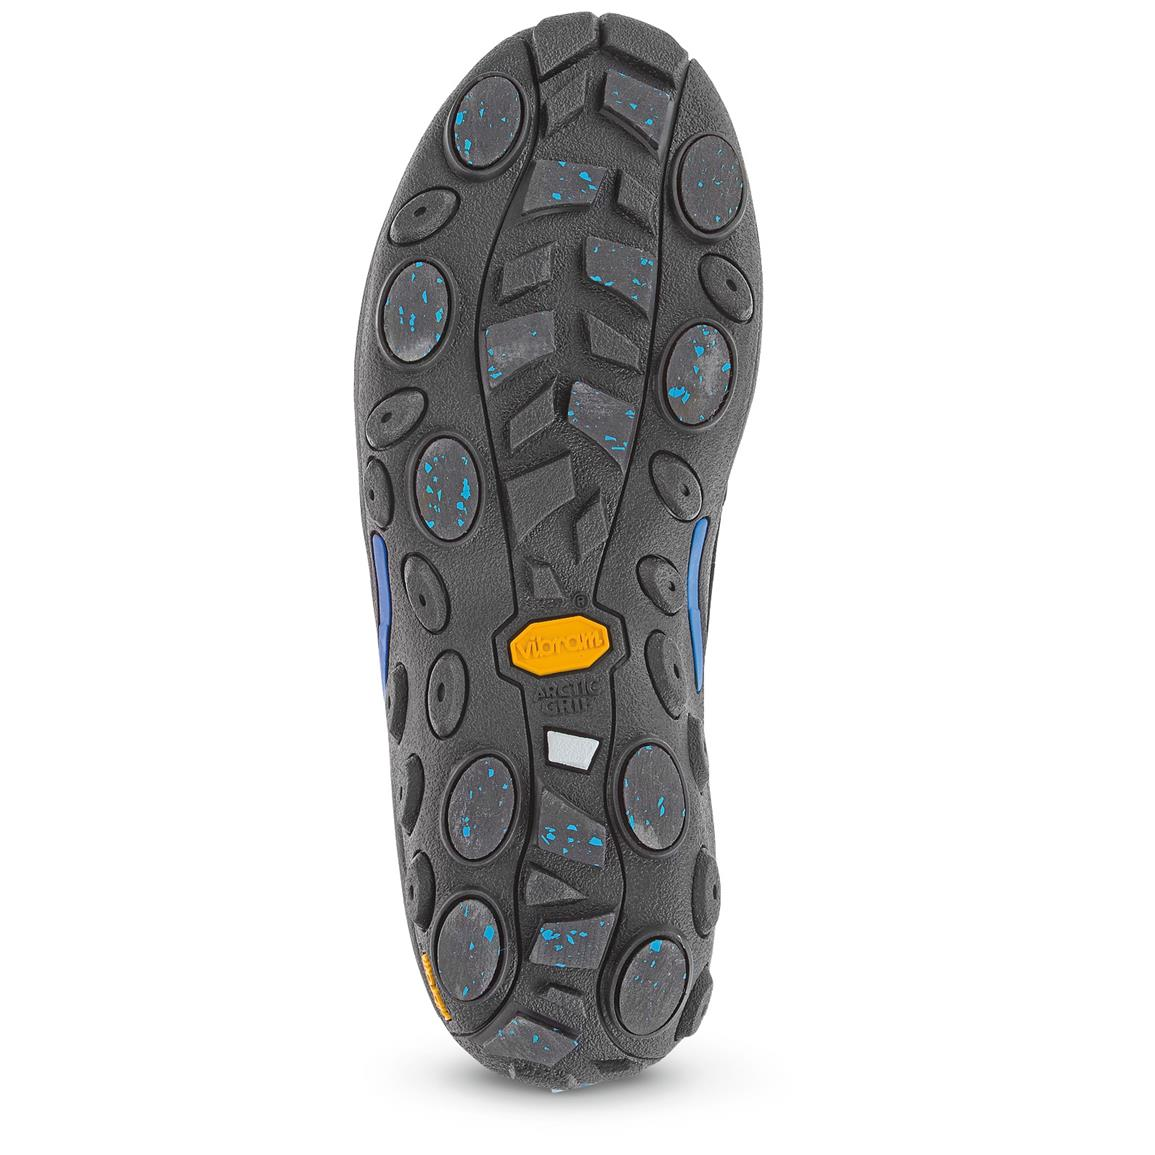 Vibram® Arctic Ice Grip slip-resistant outsole delivers top traction on all surfaces, but excels on wet ice